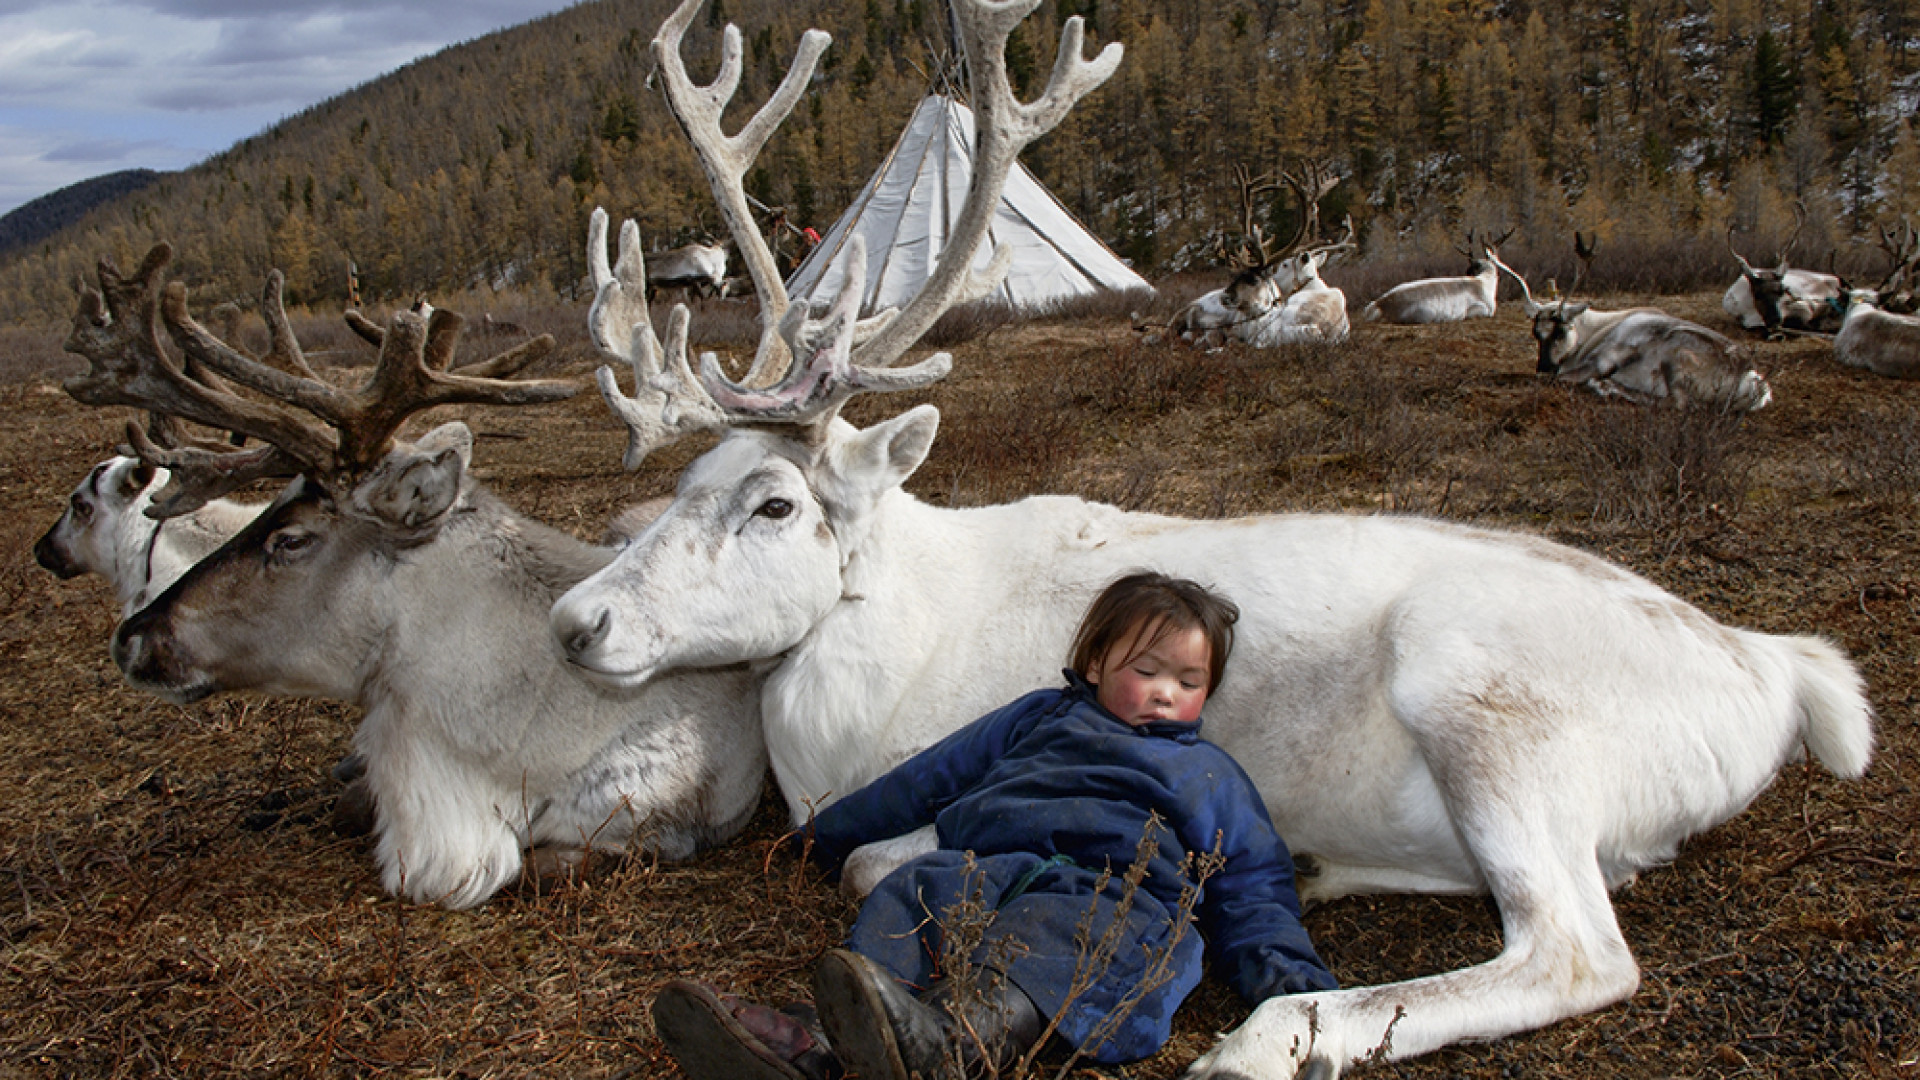 A mongolian child sleeping while leaning against a reindeer